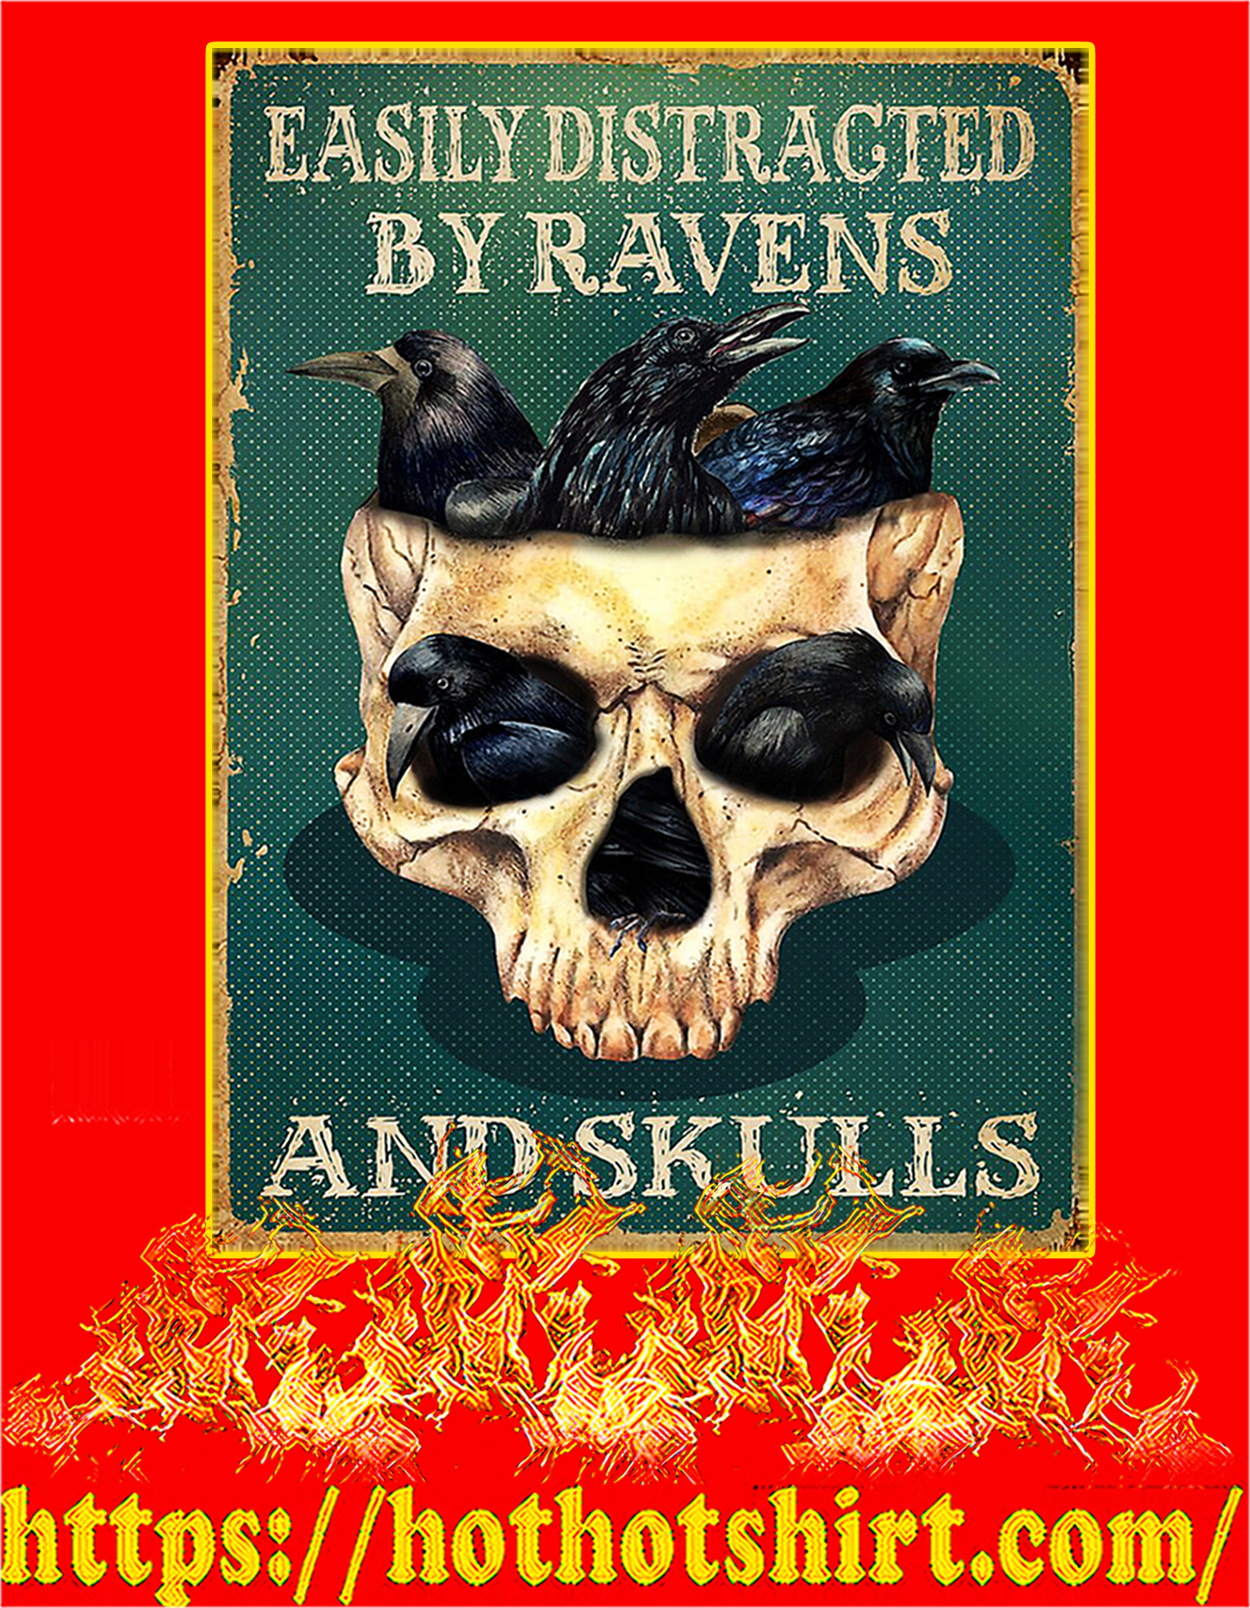 Easily distracted by ravens and skulls poster - A3